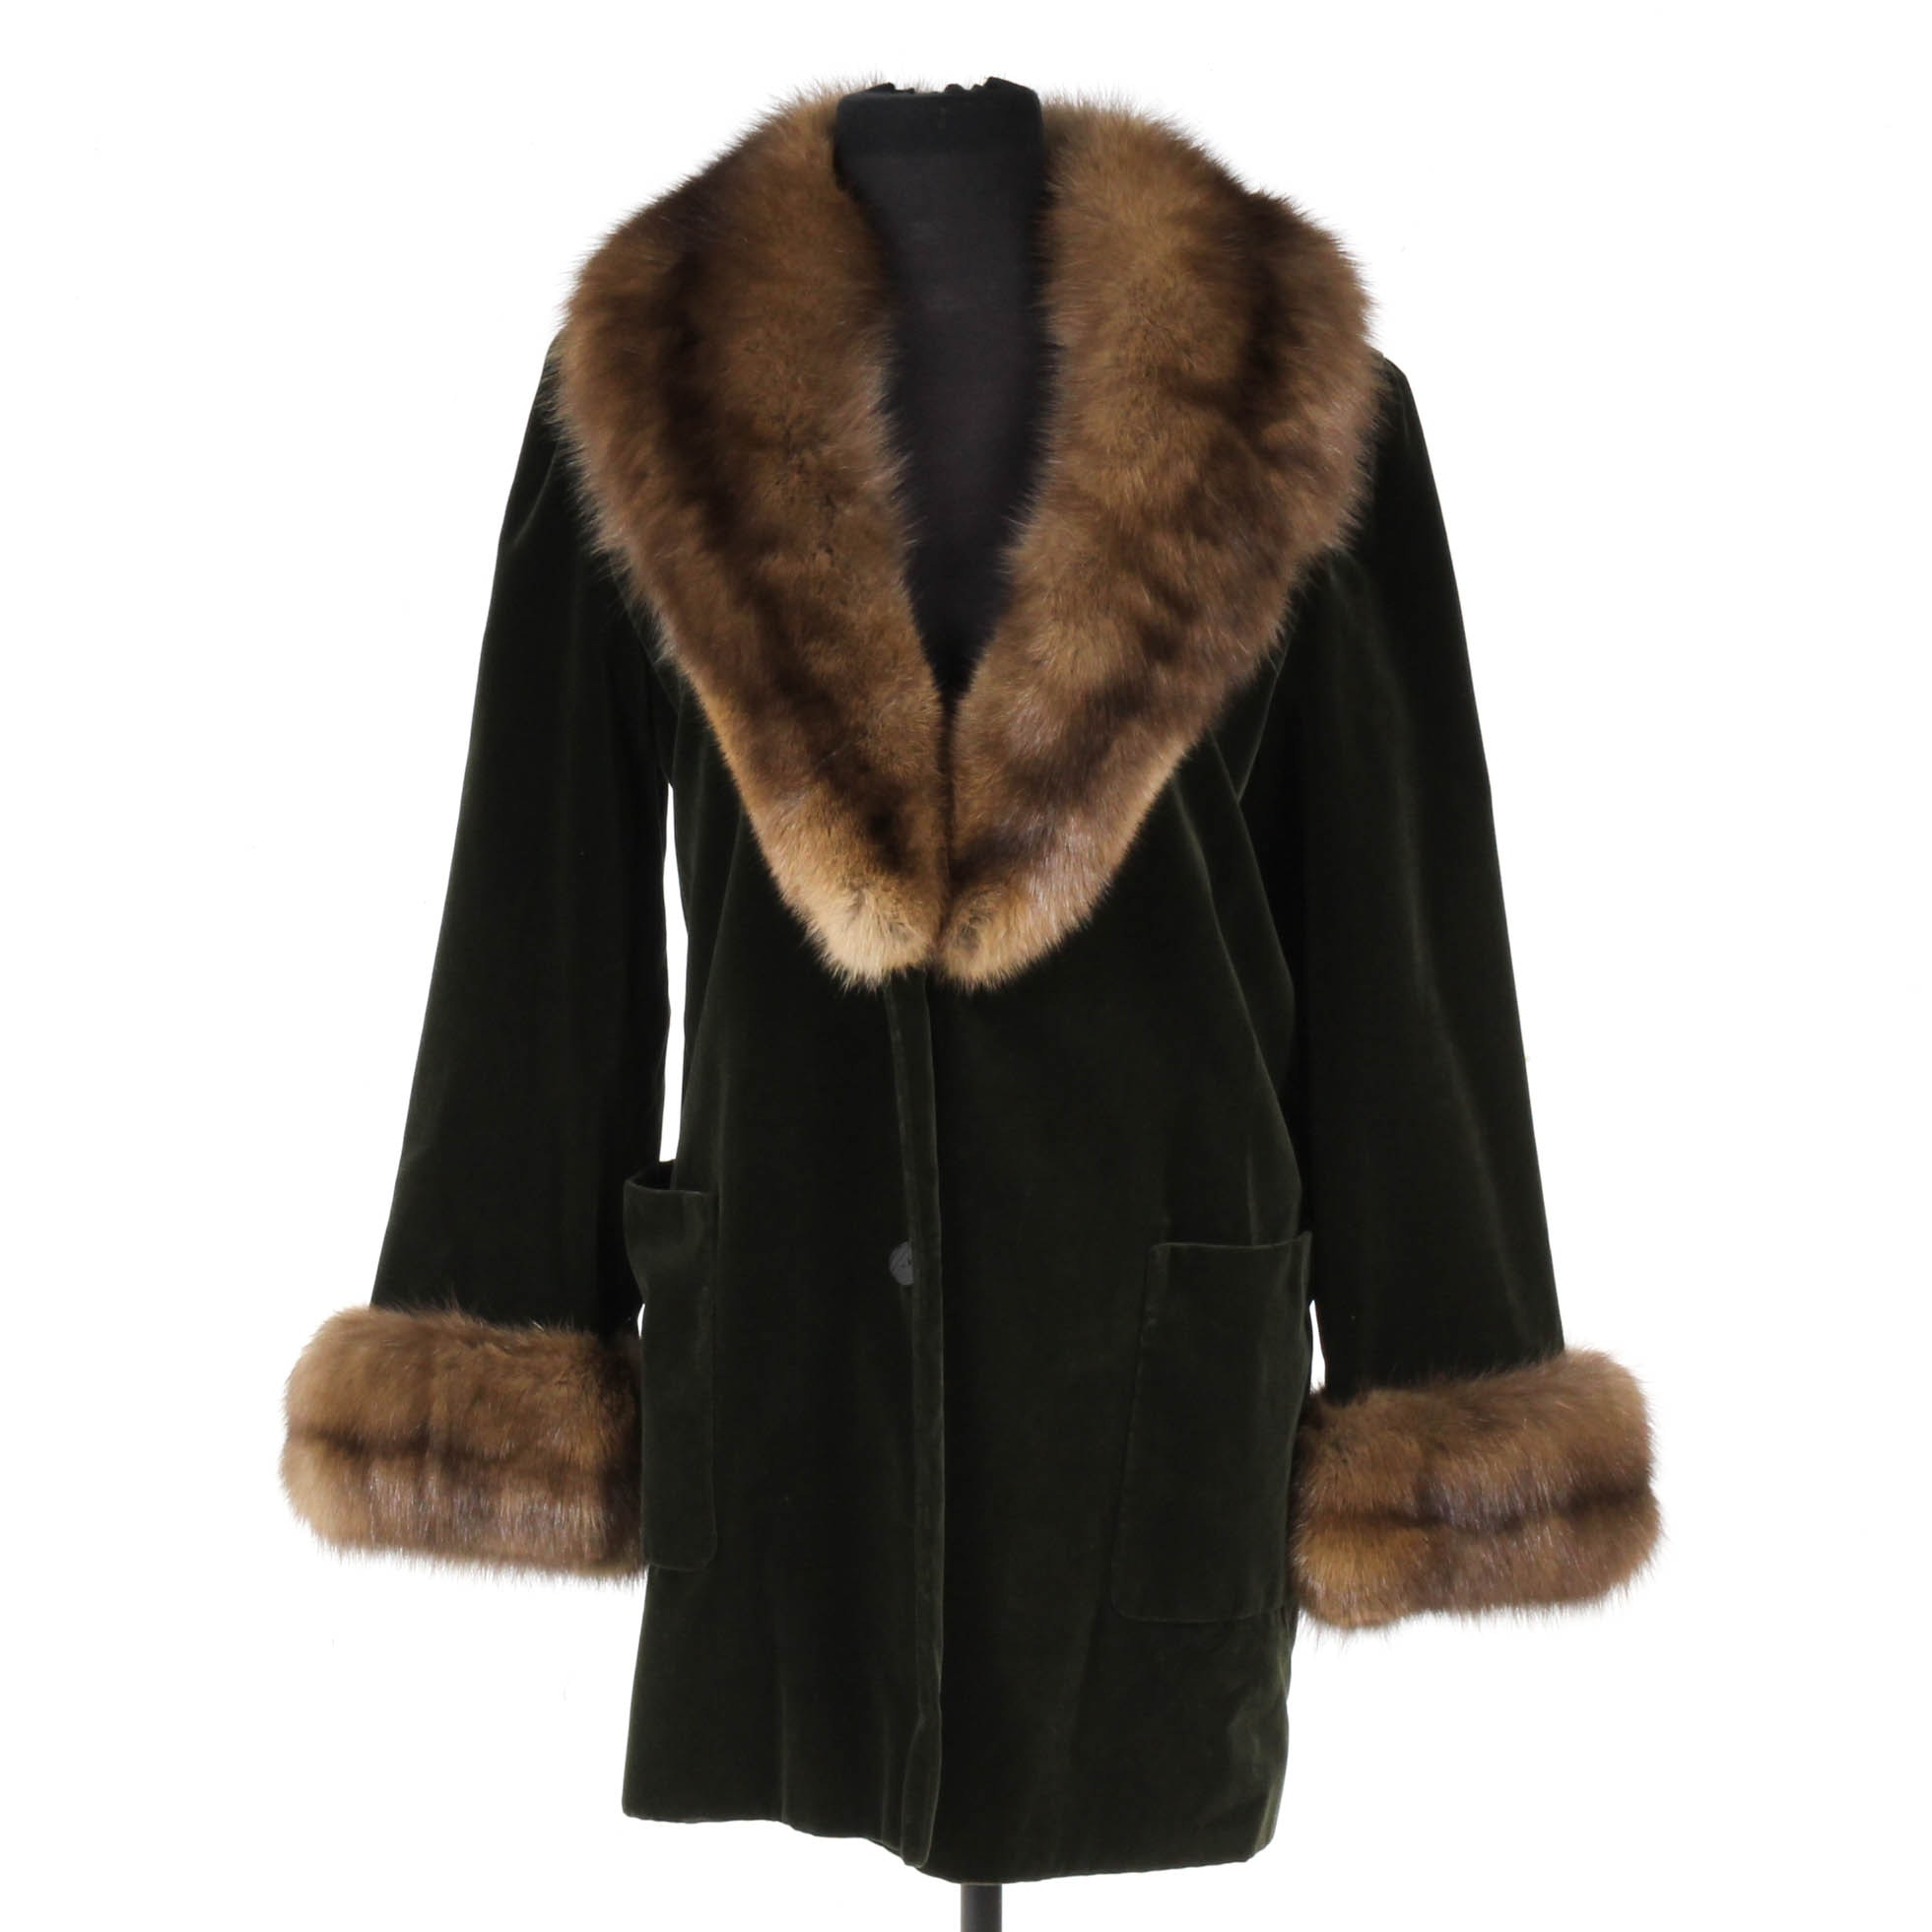 Vintage Bill Blass Velvet and Sable Fur Coat from Saks Fifth Avenue